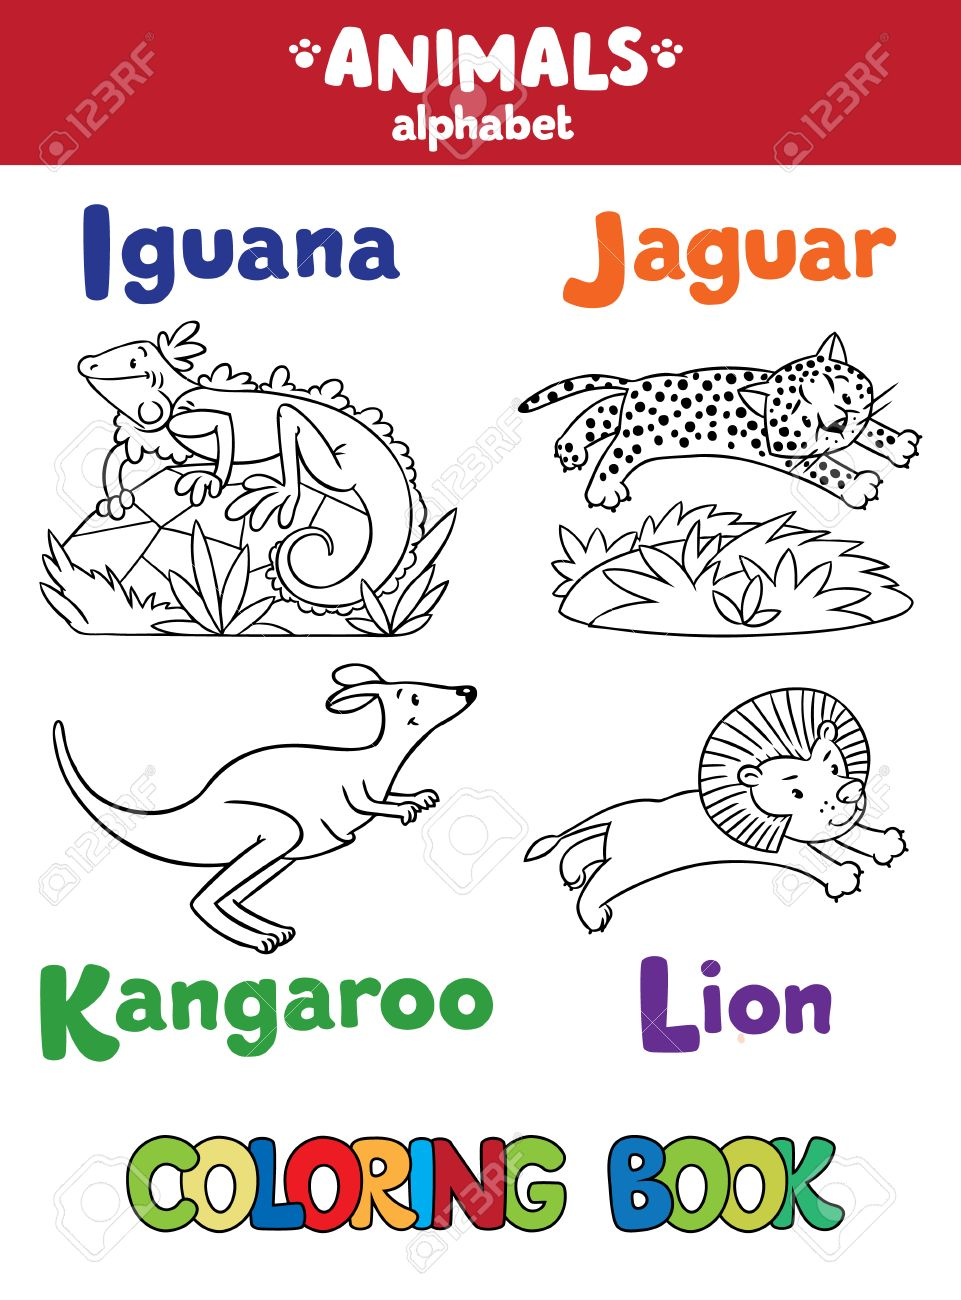 Coloring Book Or Coloring Picture Of Funny Iguana Jaguar